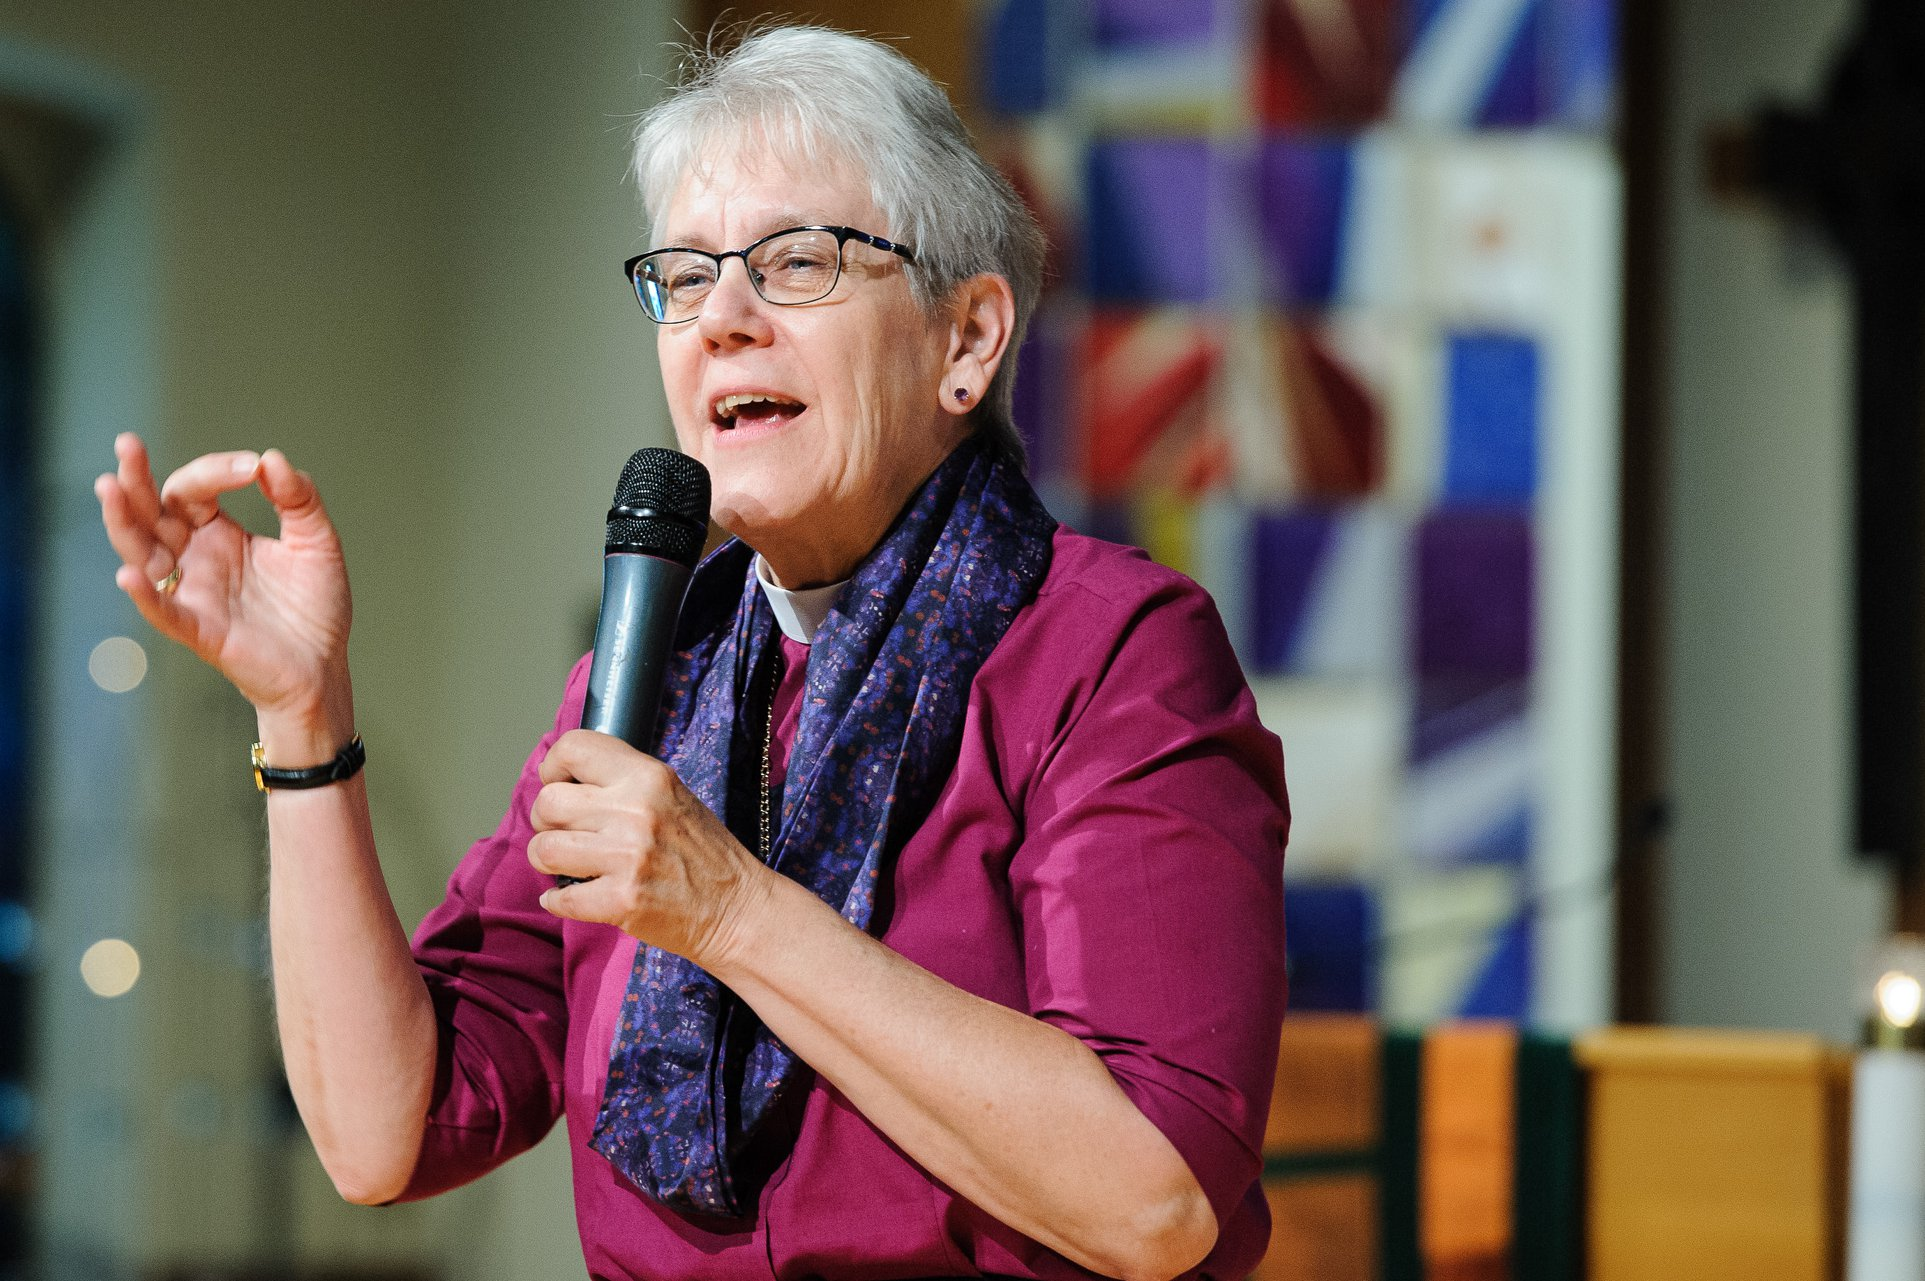 Bishop Linda Nicholls of the Diocese of Huron was elected as the Primate of the Anglican Church of Canada at the General Synod in Vancouver on July 13, 2019